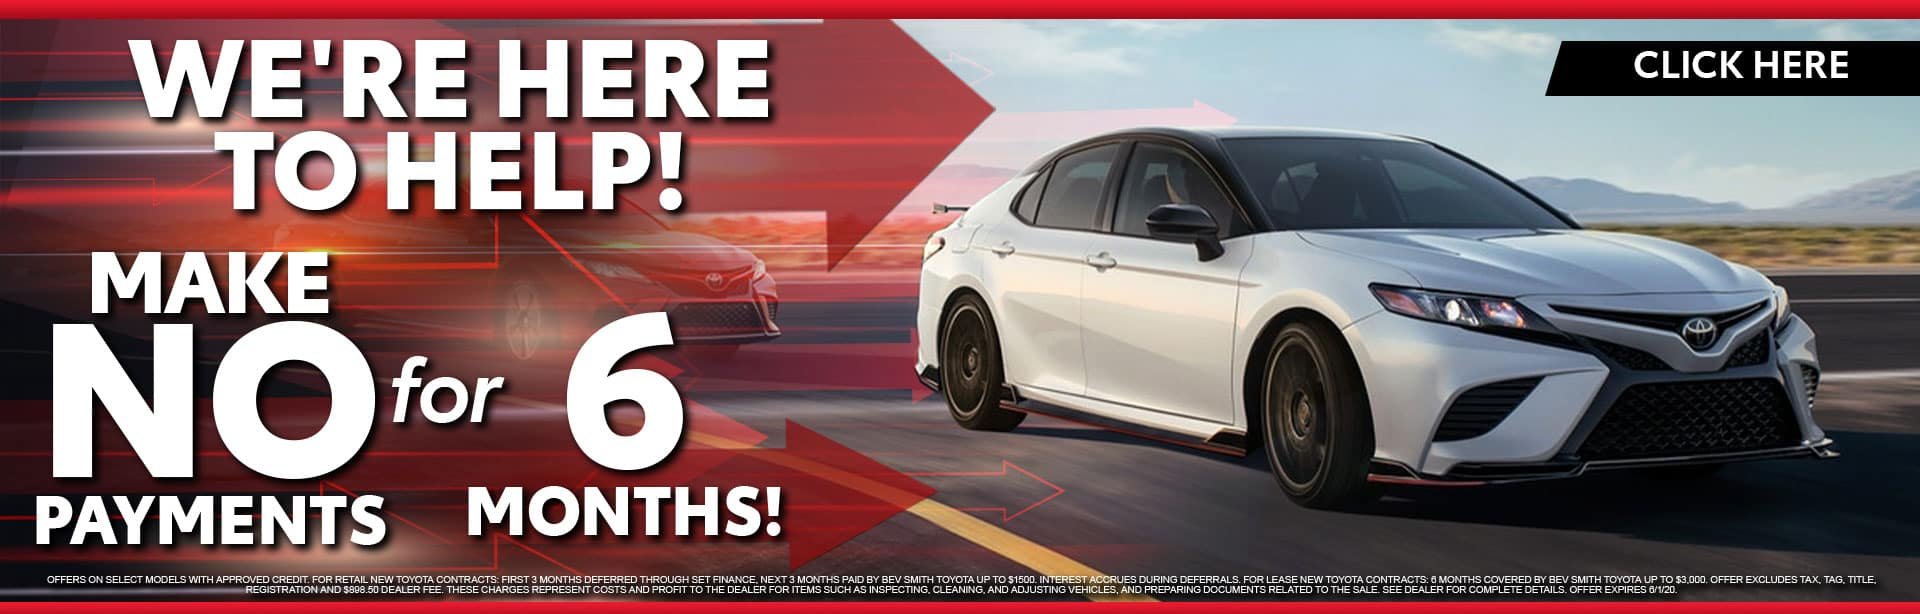 Make No Payments for 6 Months at Bev Smith Toyota!